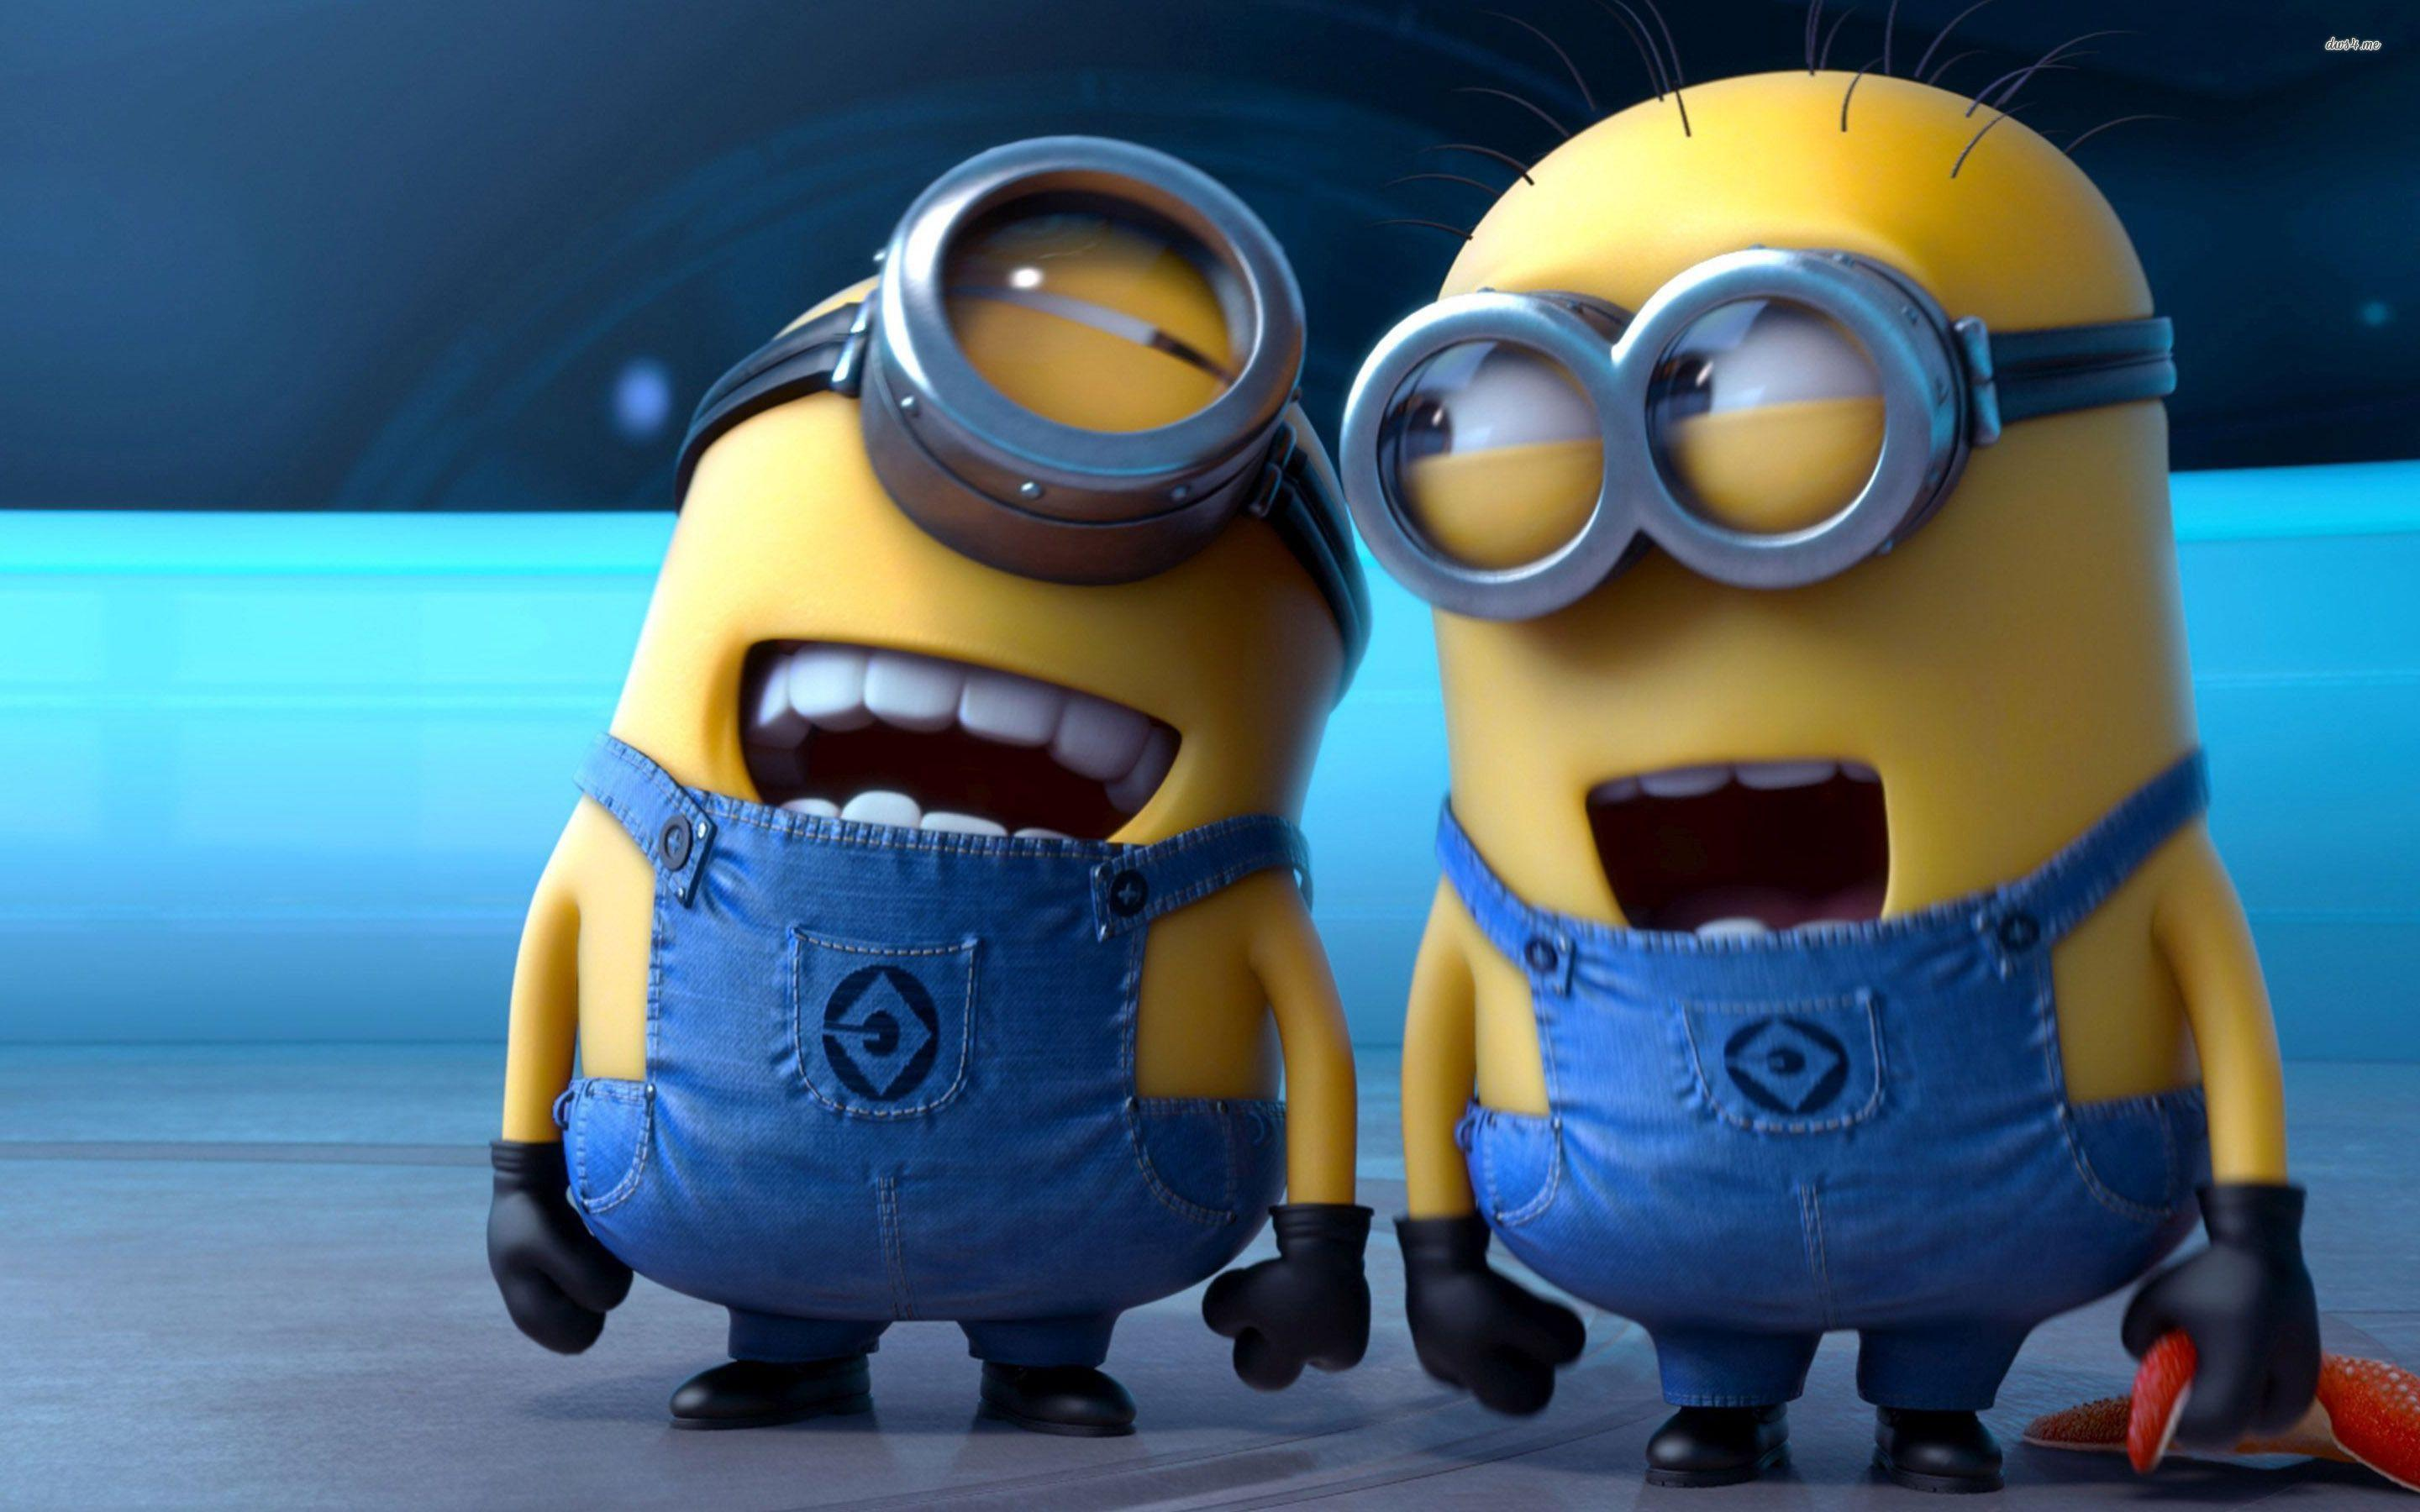 Despicable me wallpapers minions wallpaper cave despicable me wallpapers full hd wallpaper search voltagebd Image collections